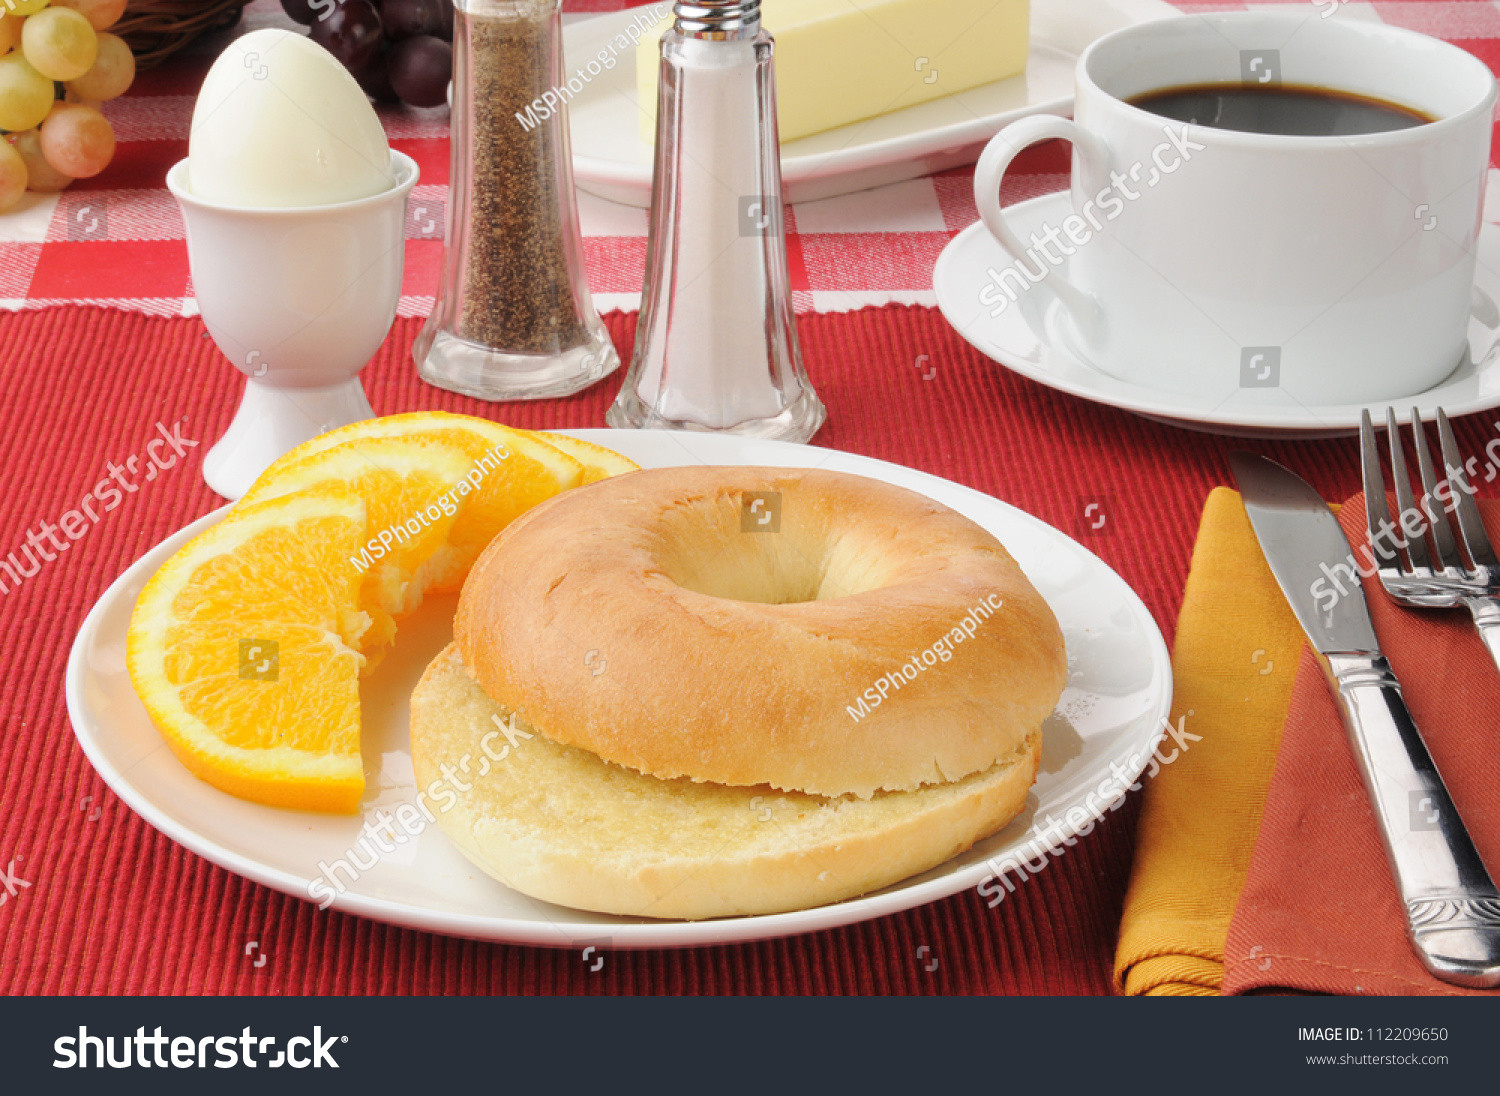 Healthy Breakfast With Boiled Eggs  Healthy Breakfast With A Hard Boiled Egg And A Bagel Stock